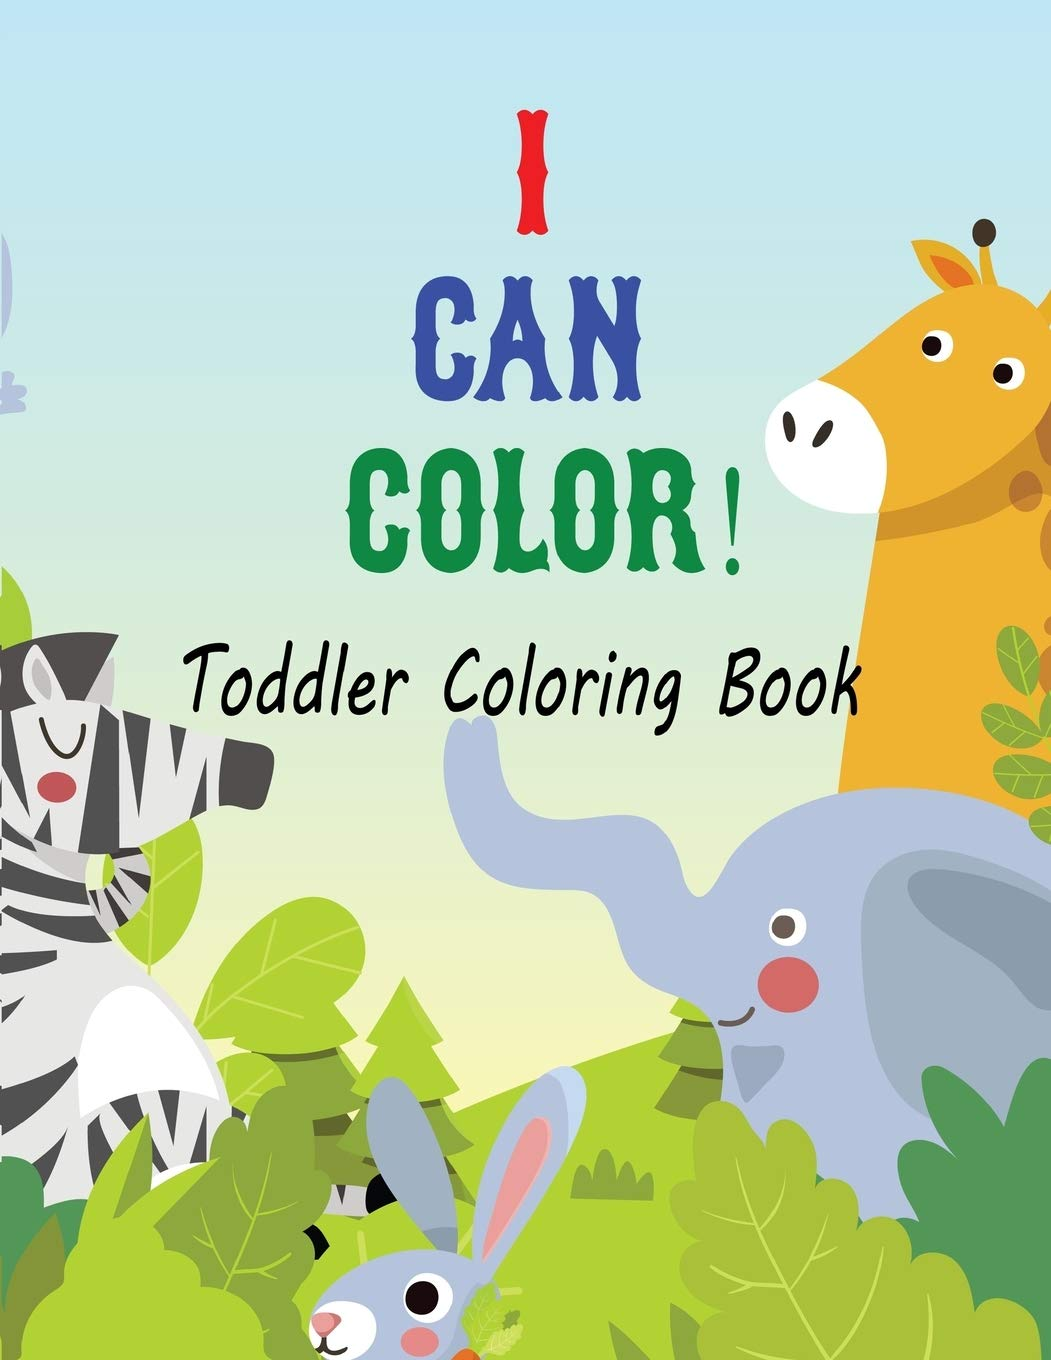 I Can Color Toddler Coloring Book Child Coloring Books Animal Coloring Book Perfect Toddler Coloring Books Animal Coloring Book For Toddler Aged Draw Enhanced Your Kids Activity With This Press Liro